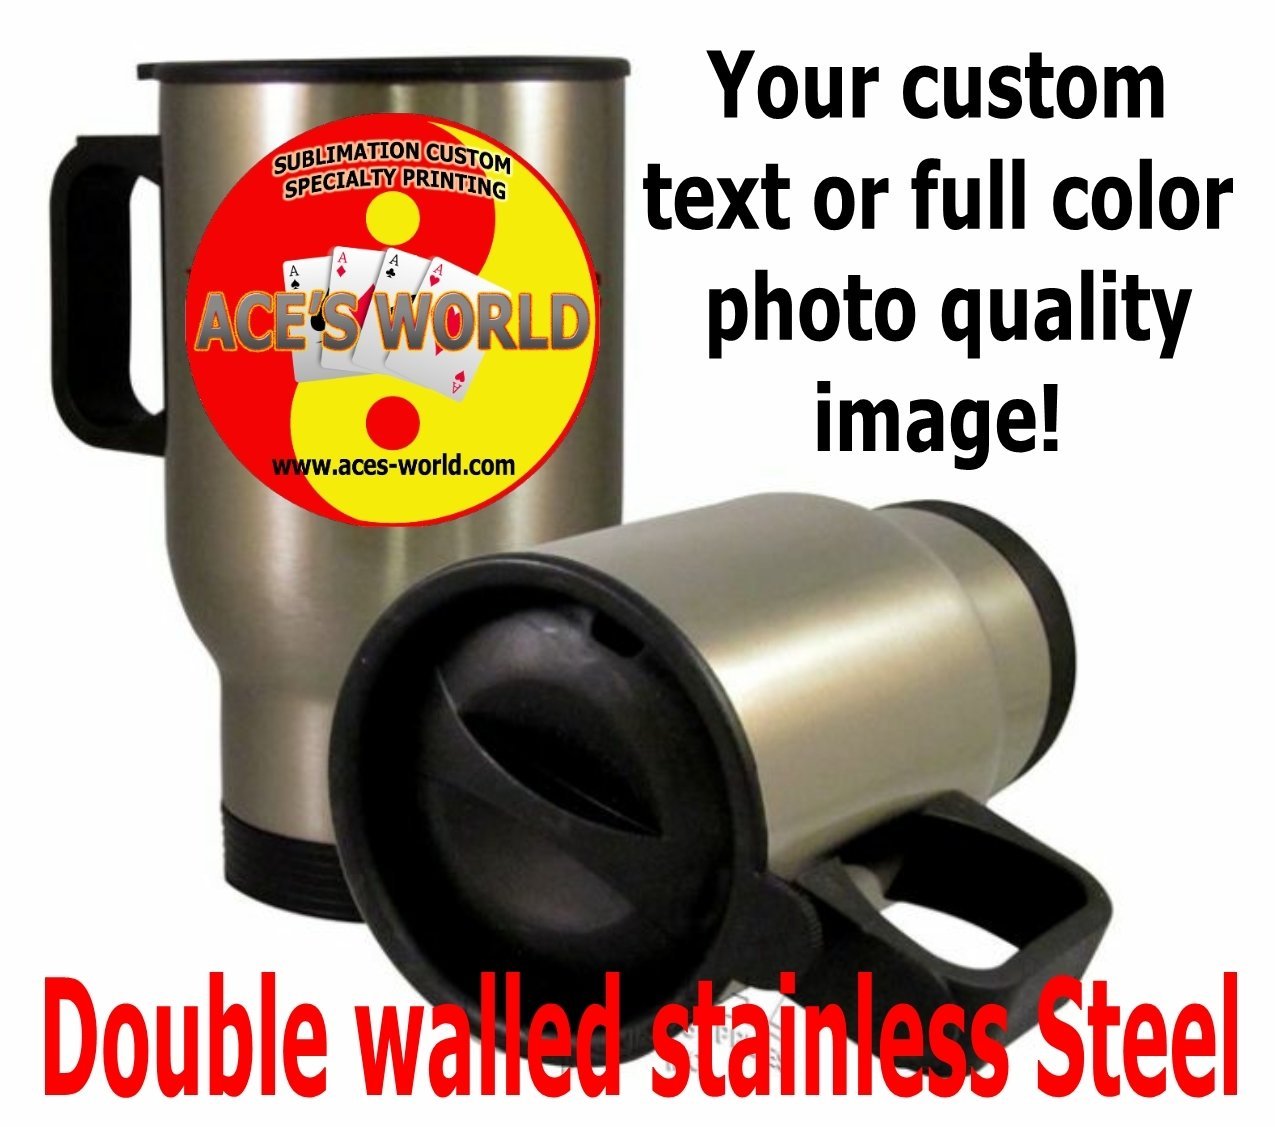 Stainless Steel Travel Mug - 14oz. Custom Image